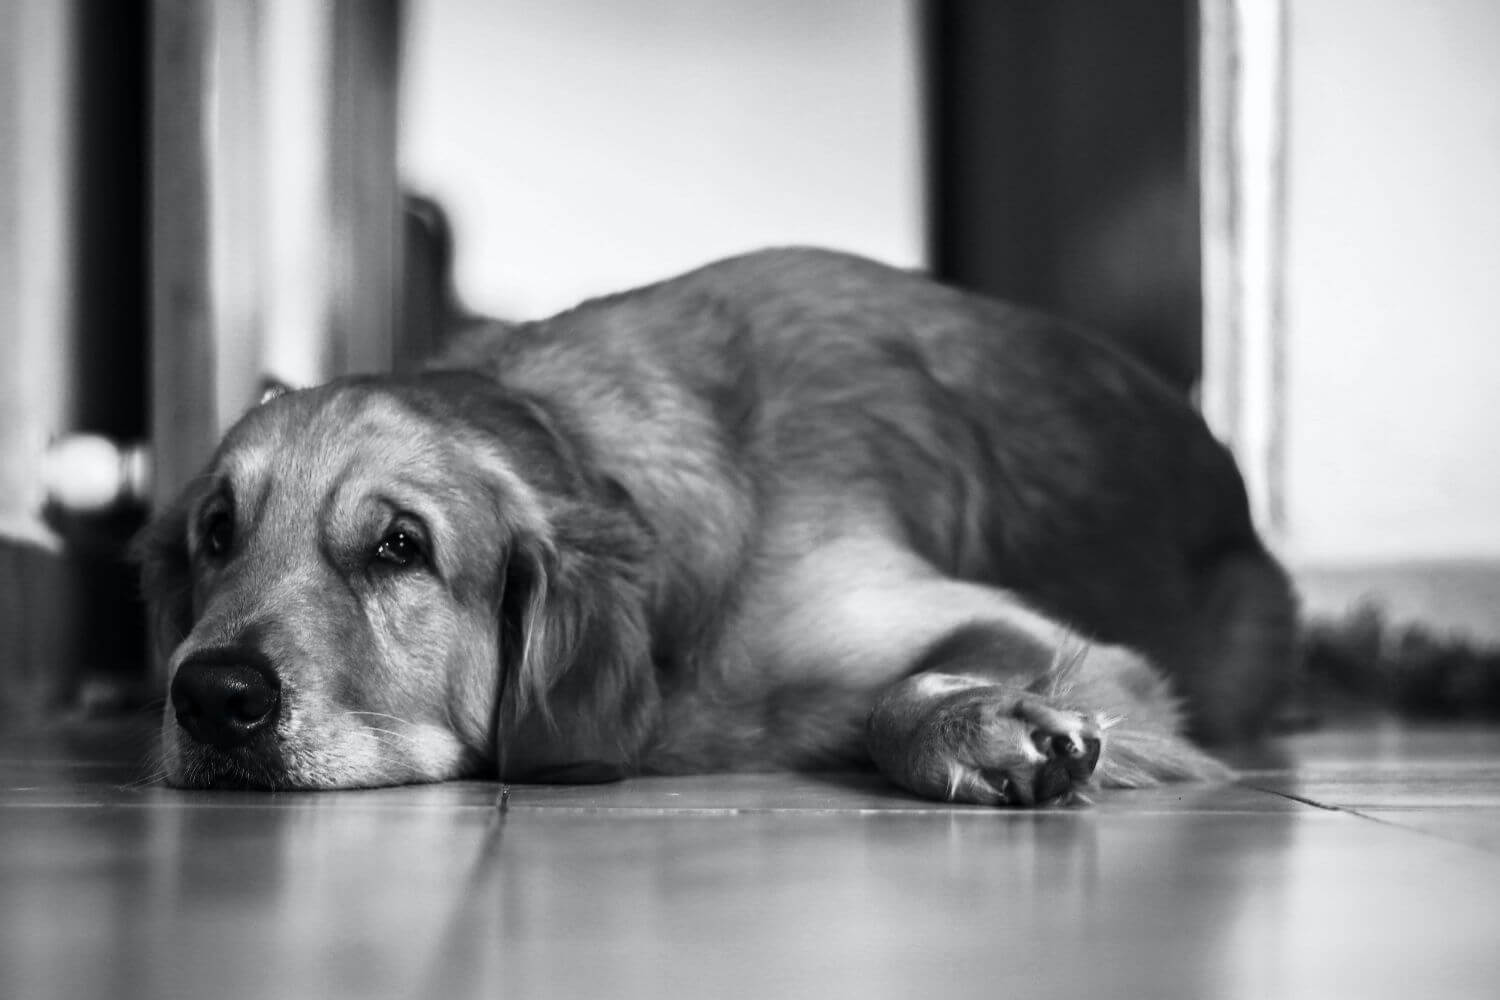 Prevent disease and monitor your dog's health